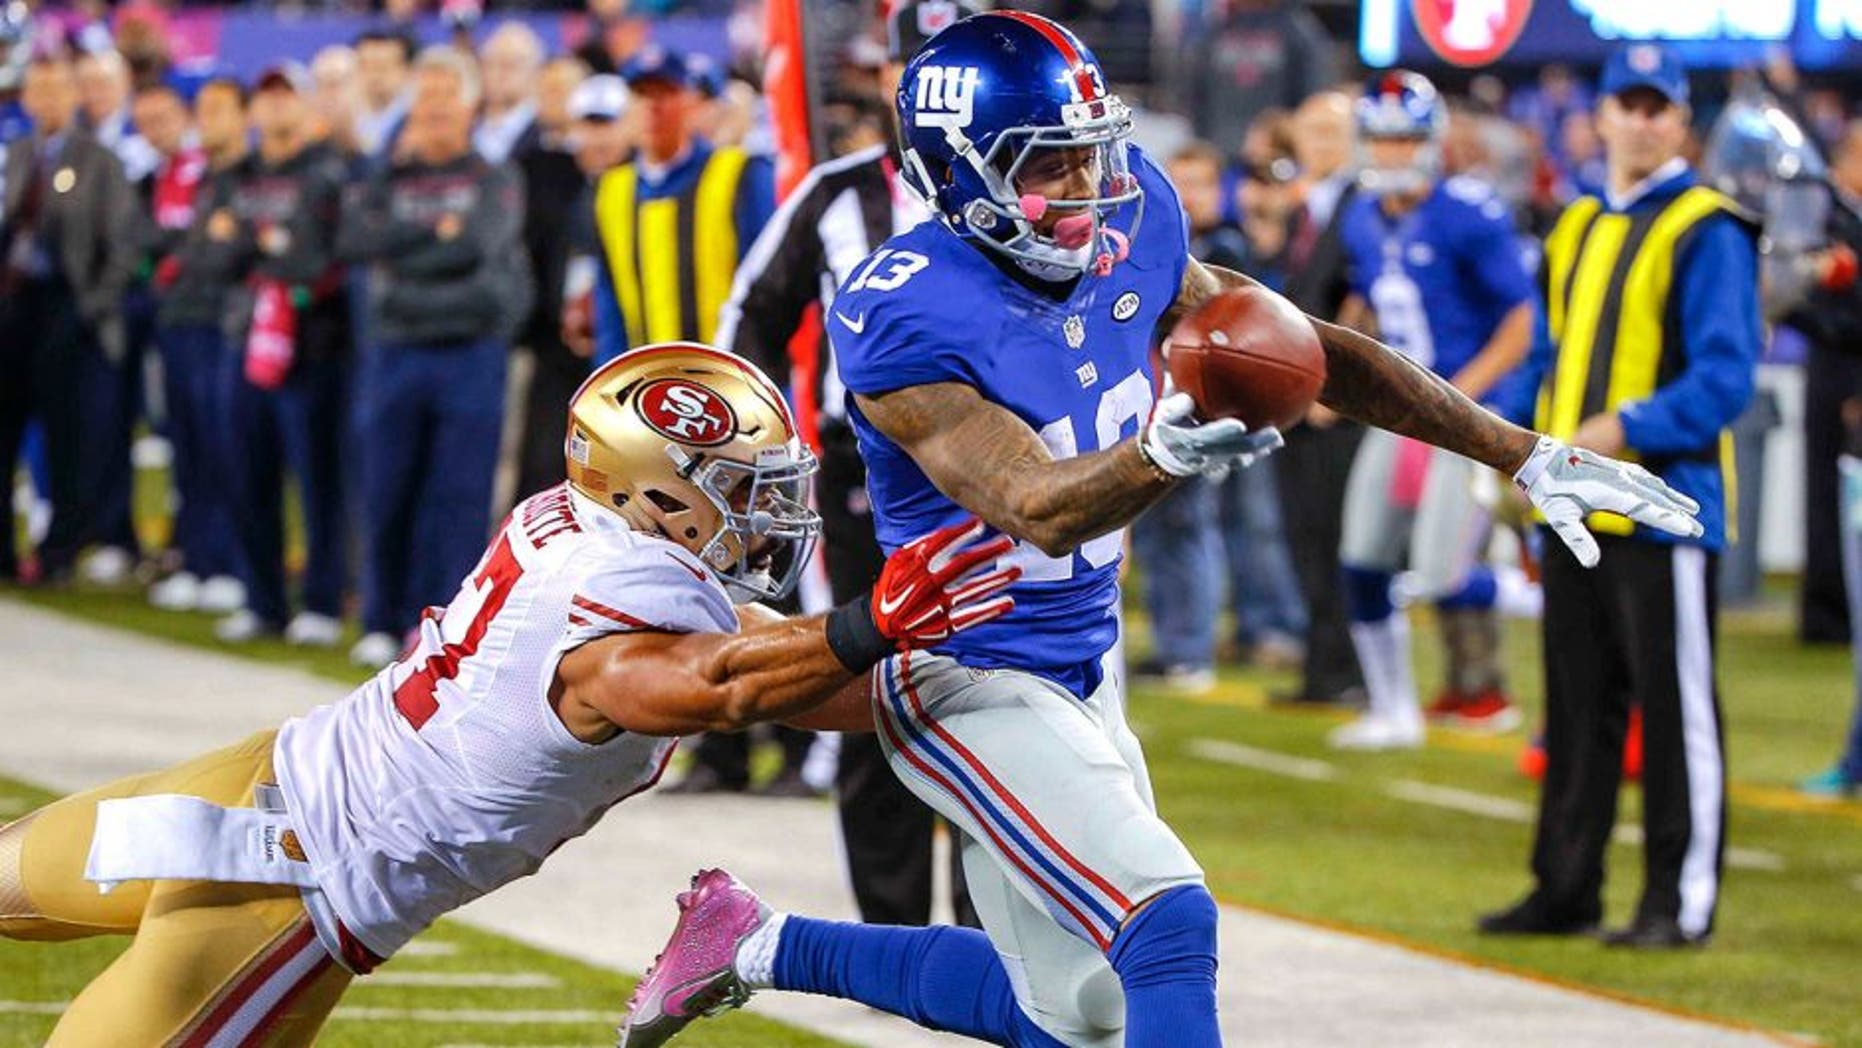 Oct 11, 2015; East Rutherford, NJ, USA; New York Giants wide receiver Odell Beckham (13) scores a touchdown against the San Francisco 49ers during the third quarter at MetLife Stadium. The Giants won 30-27. Mandatory Credit: Jim O'Connor-USA TODAY Sports